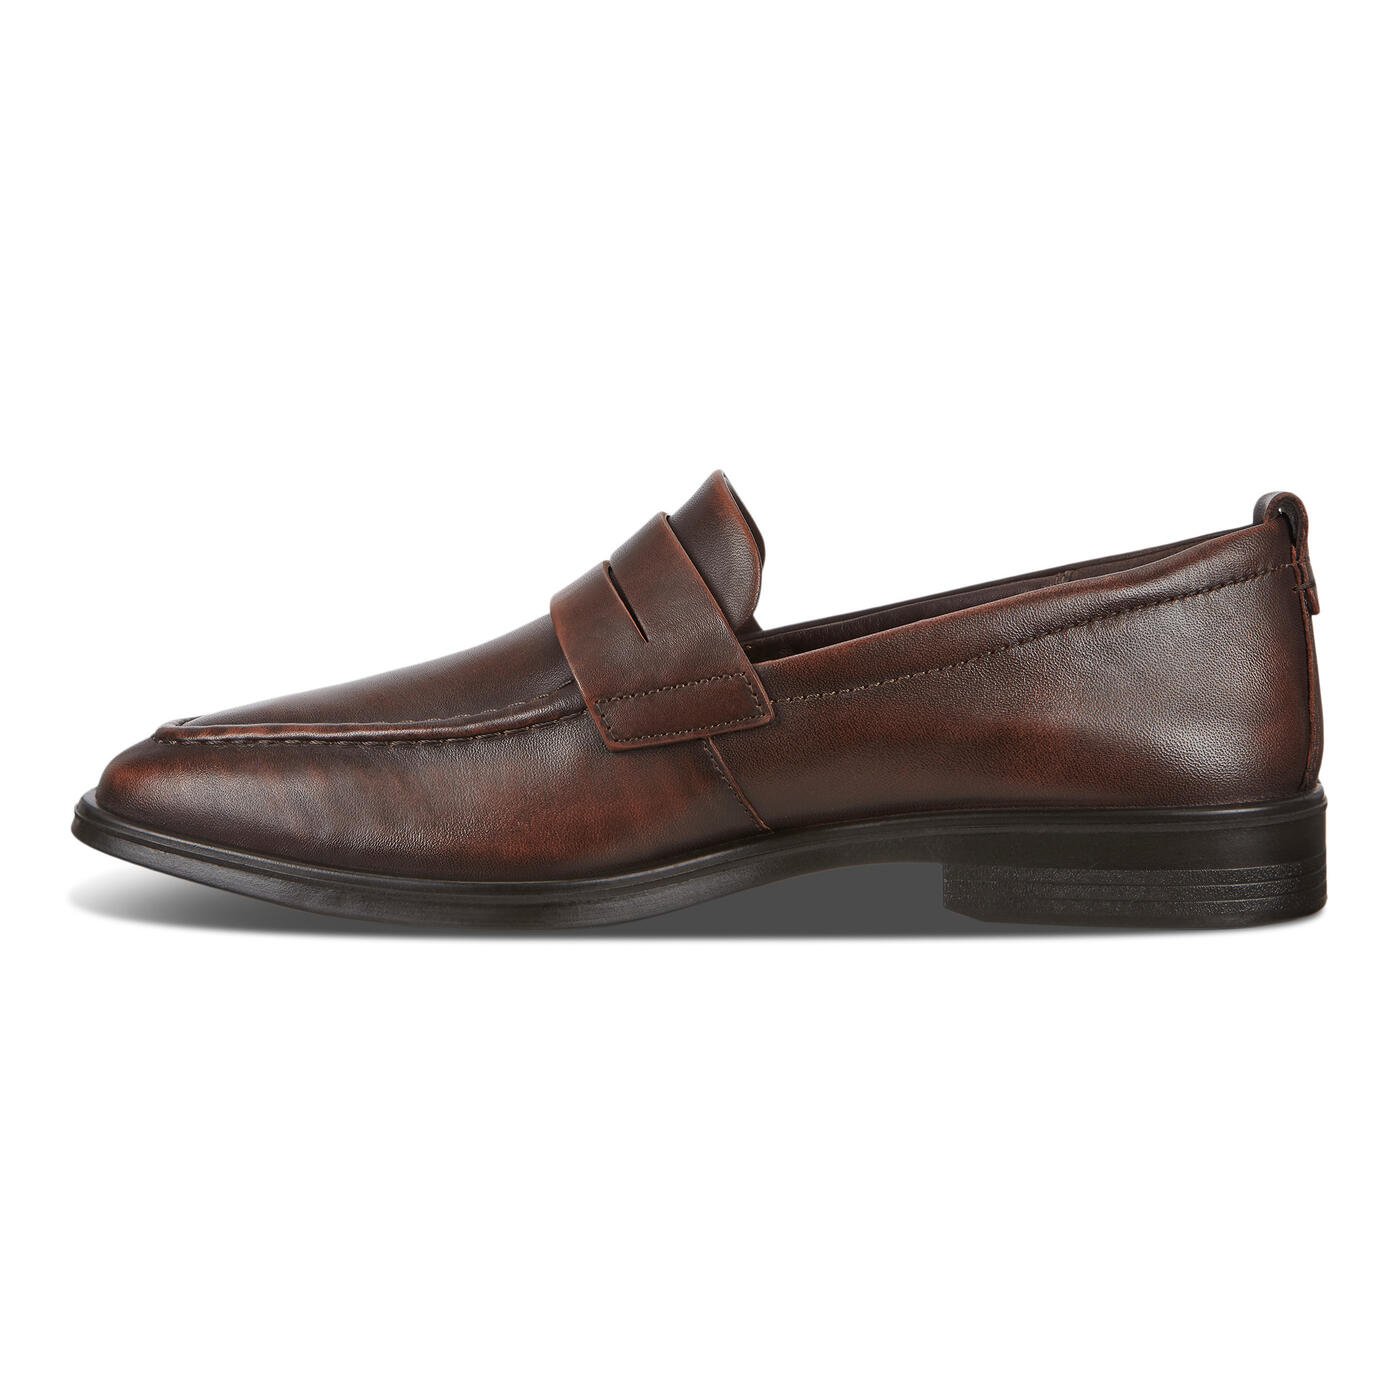 ECCO® ビジネスシューズ   MELBOURNE Penny Loafer Flexible Leather ...